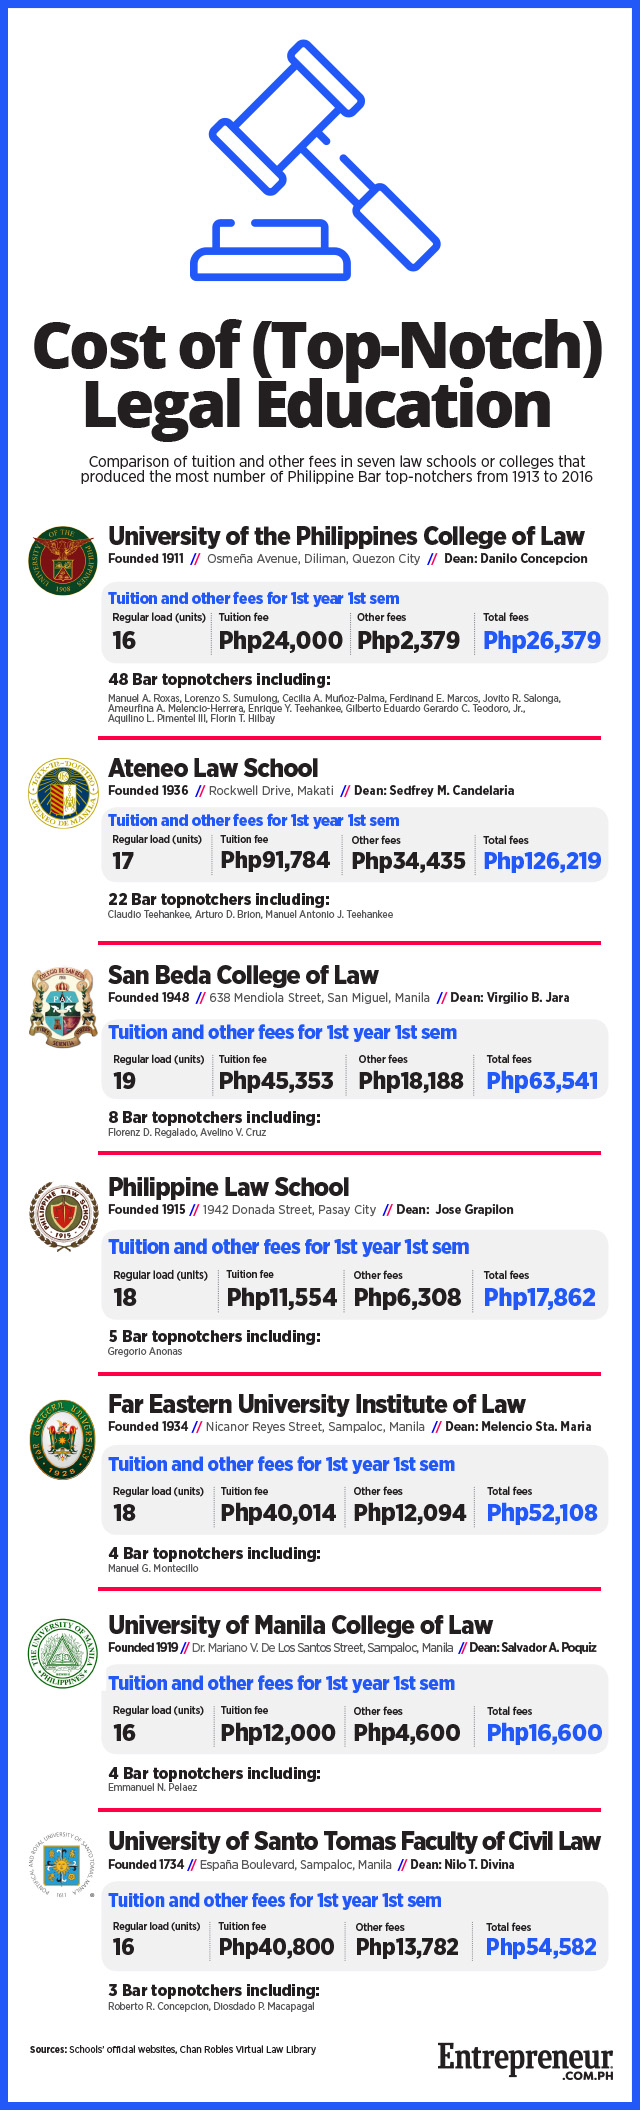 how much does it cost to study to become a lawyer in the philippines